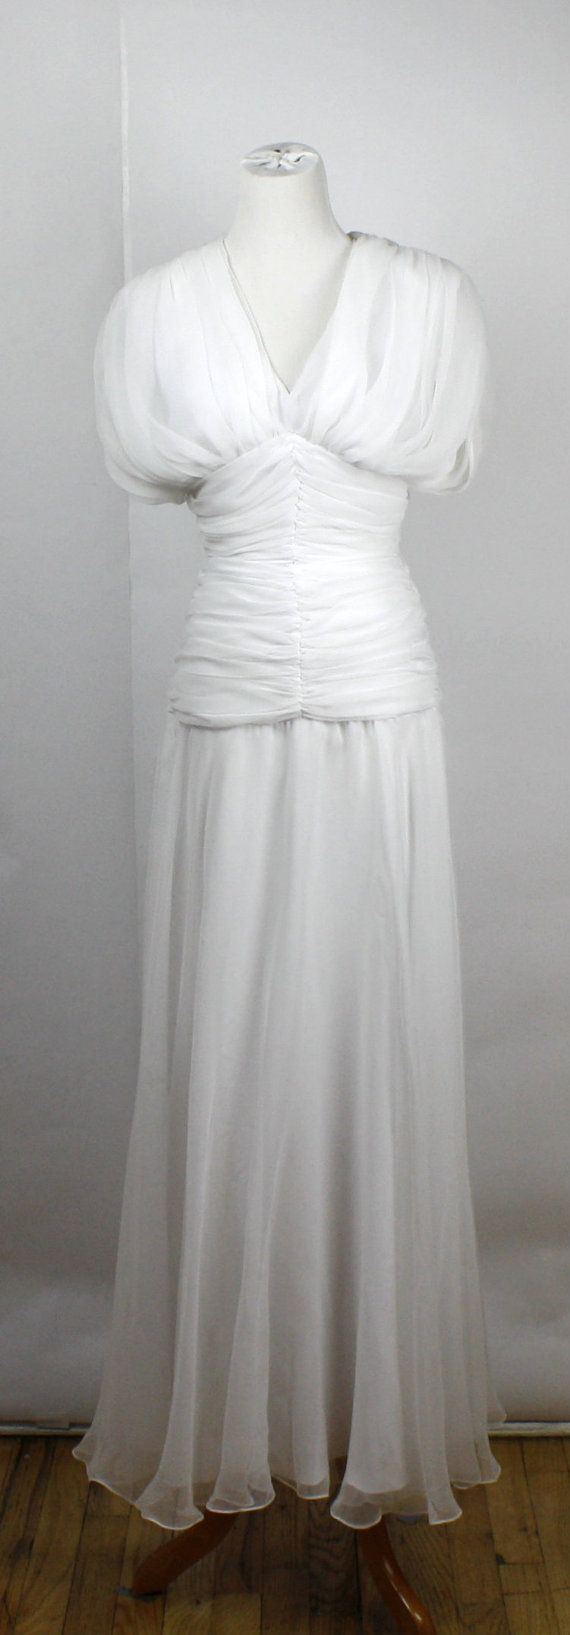 80s white Tadashi dress / 1980s evening gown / Great Gatsby style ...